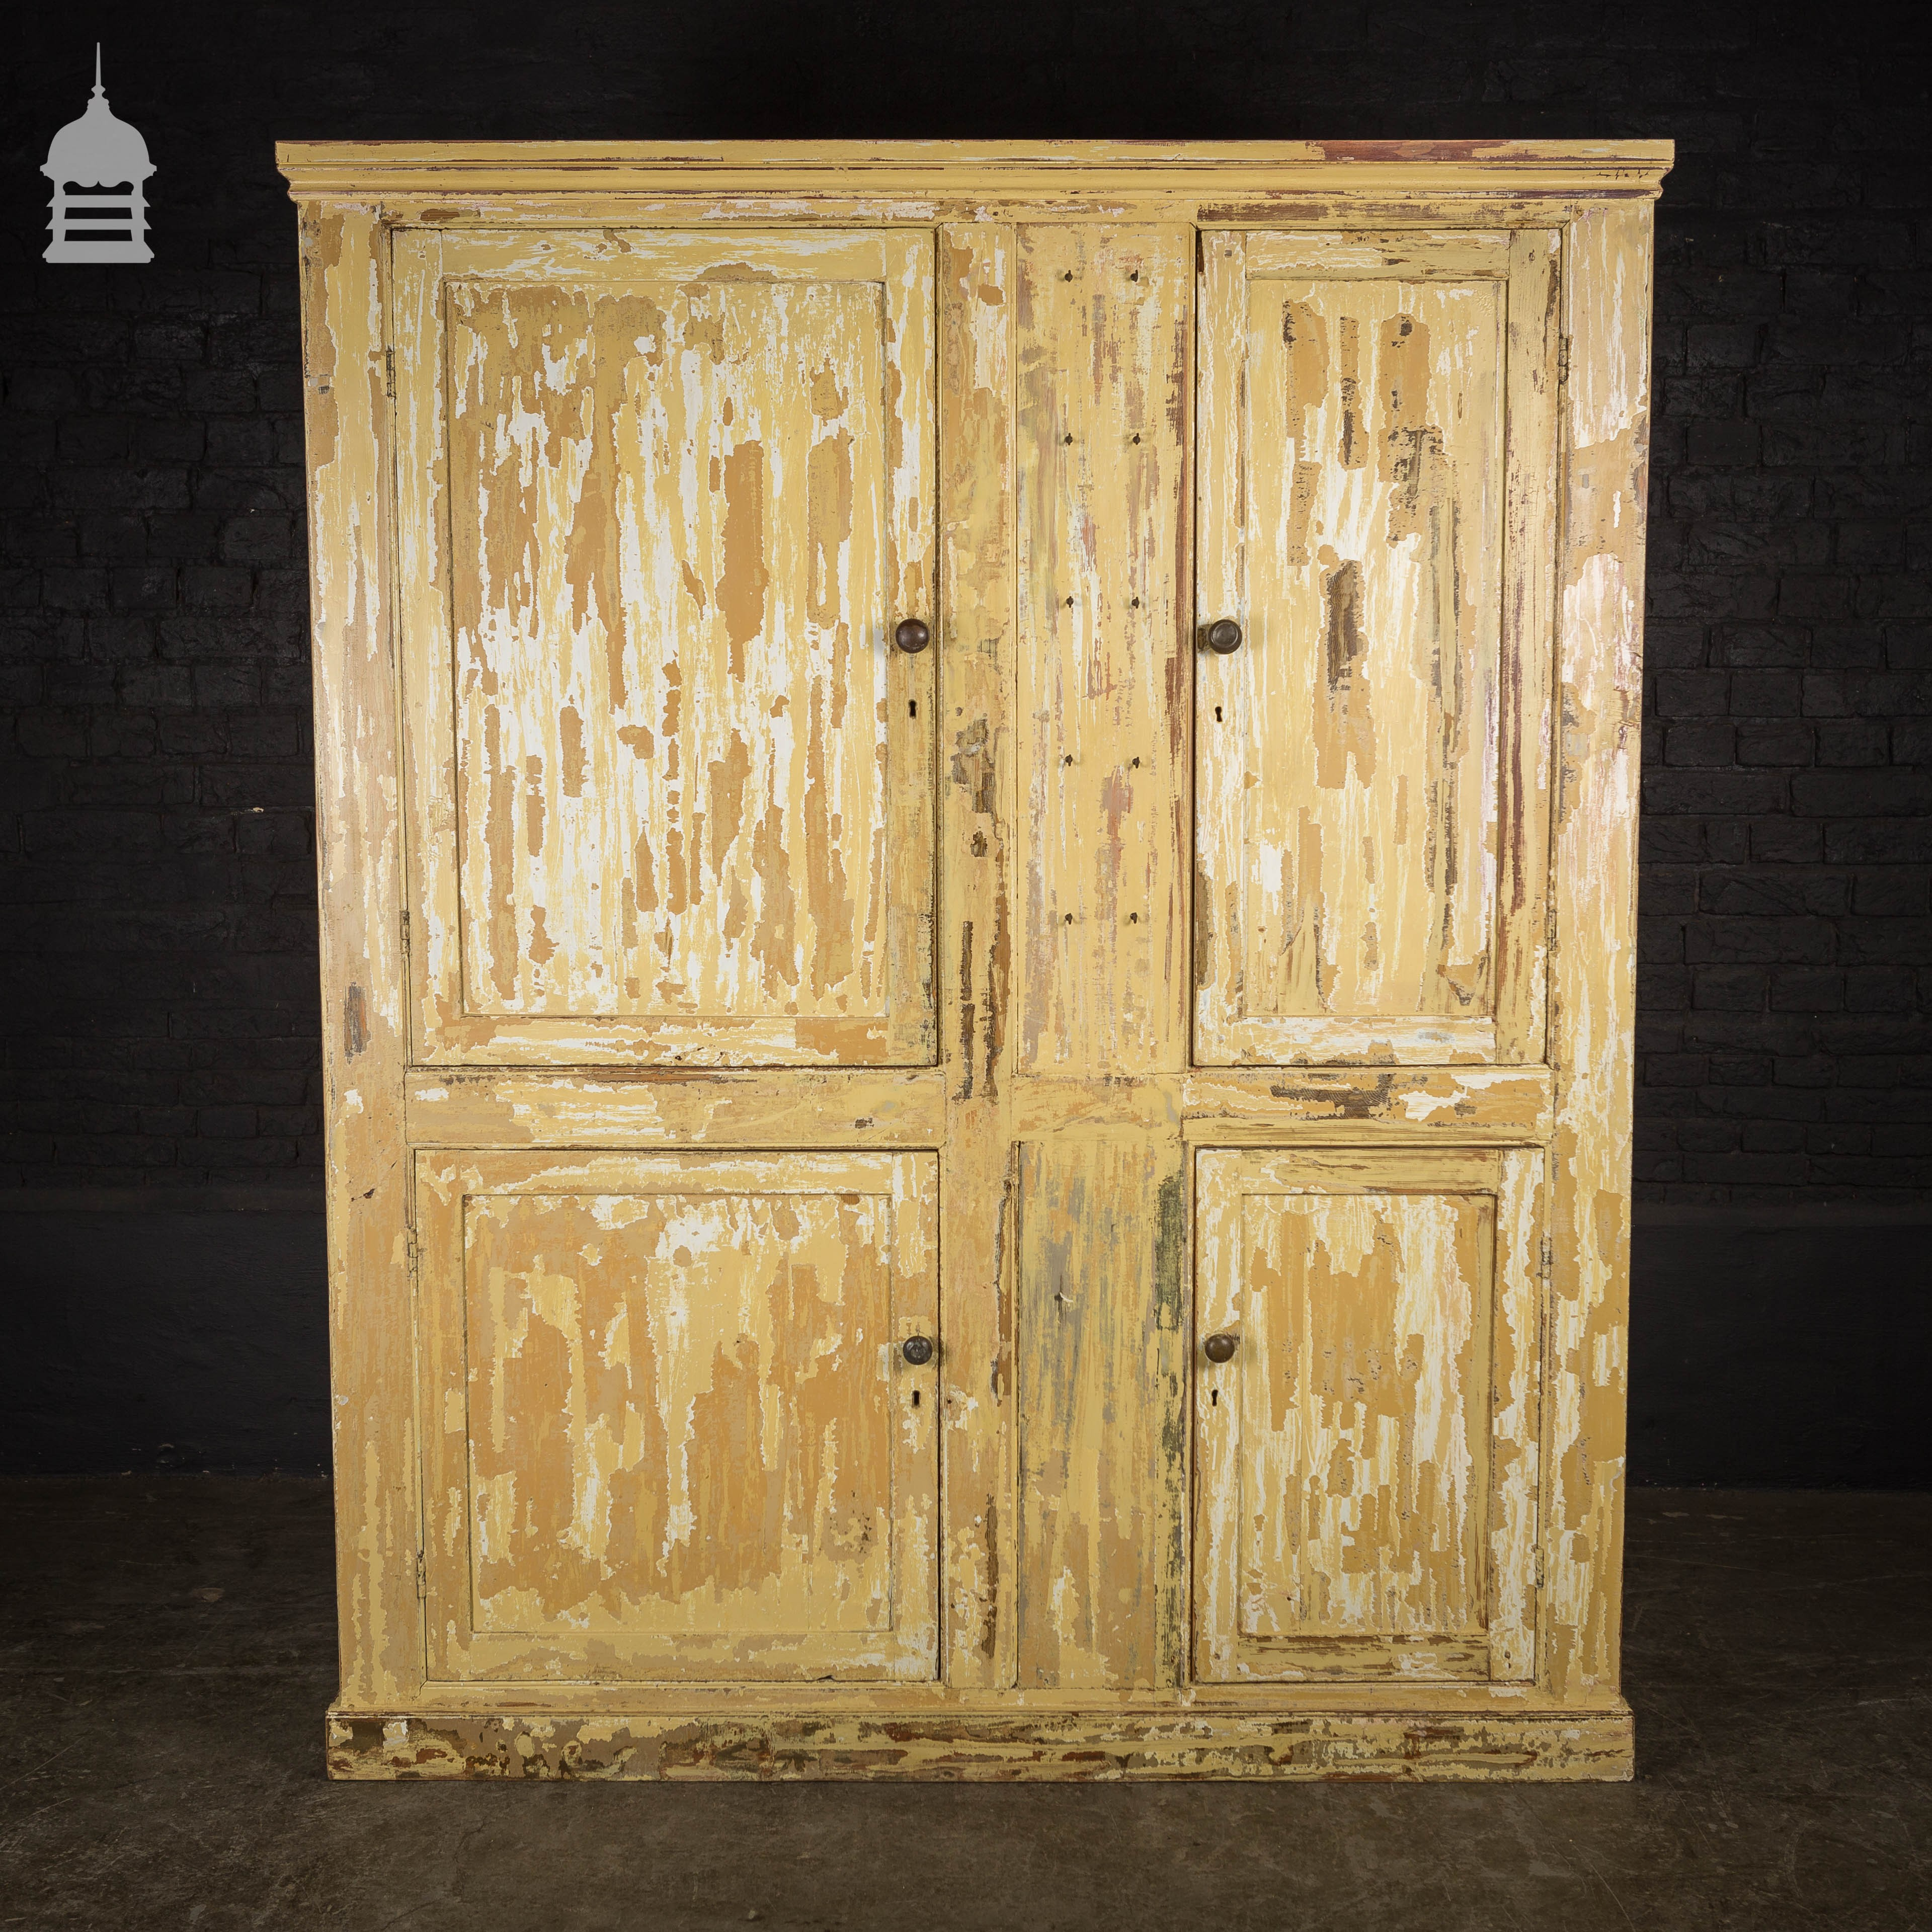 19th C Pine Pantry Cupboard With Distressed Paint And Key Hooks